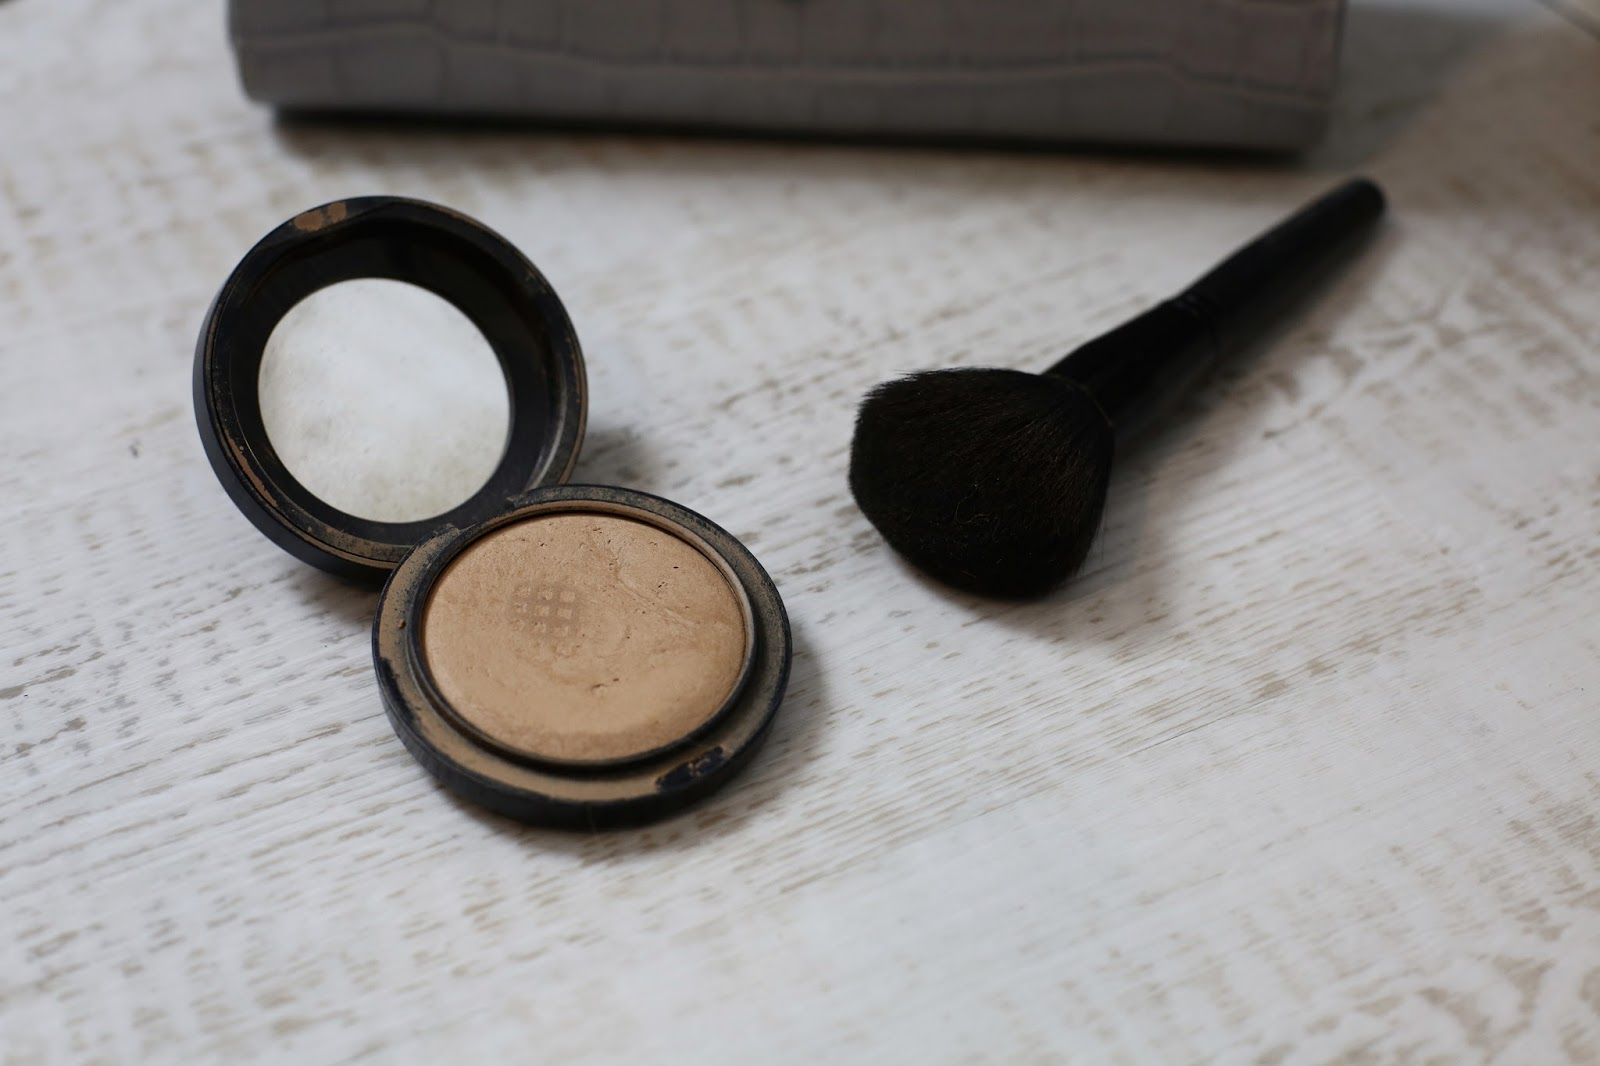 mac mineralise powder